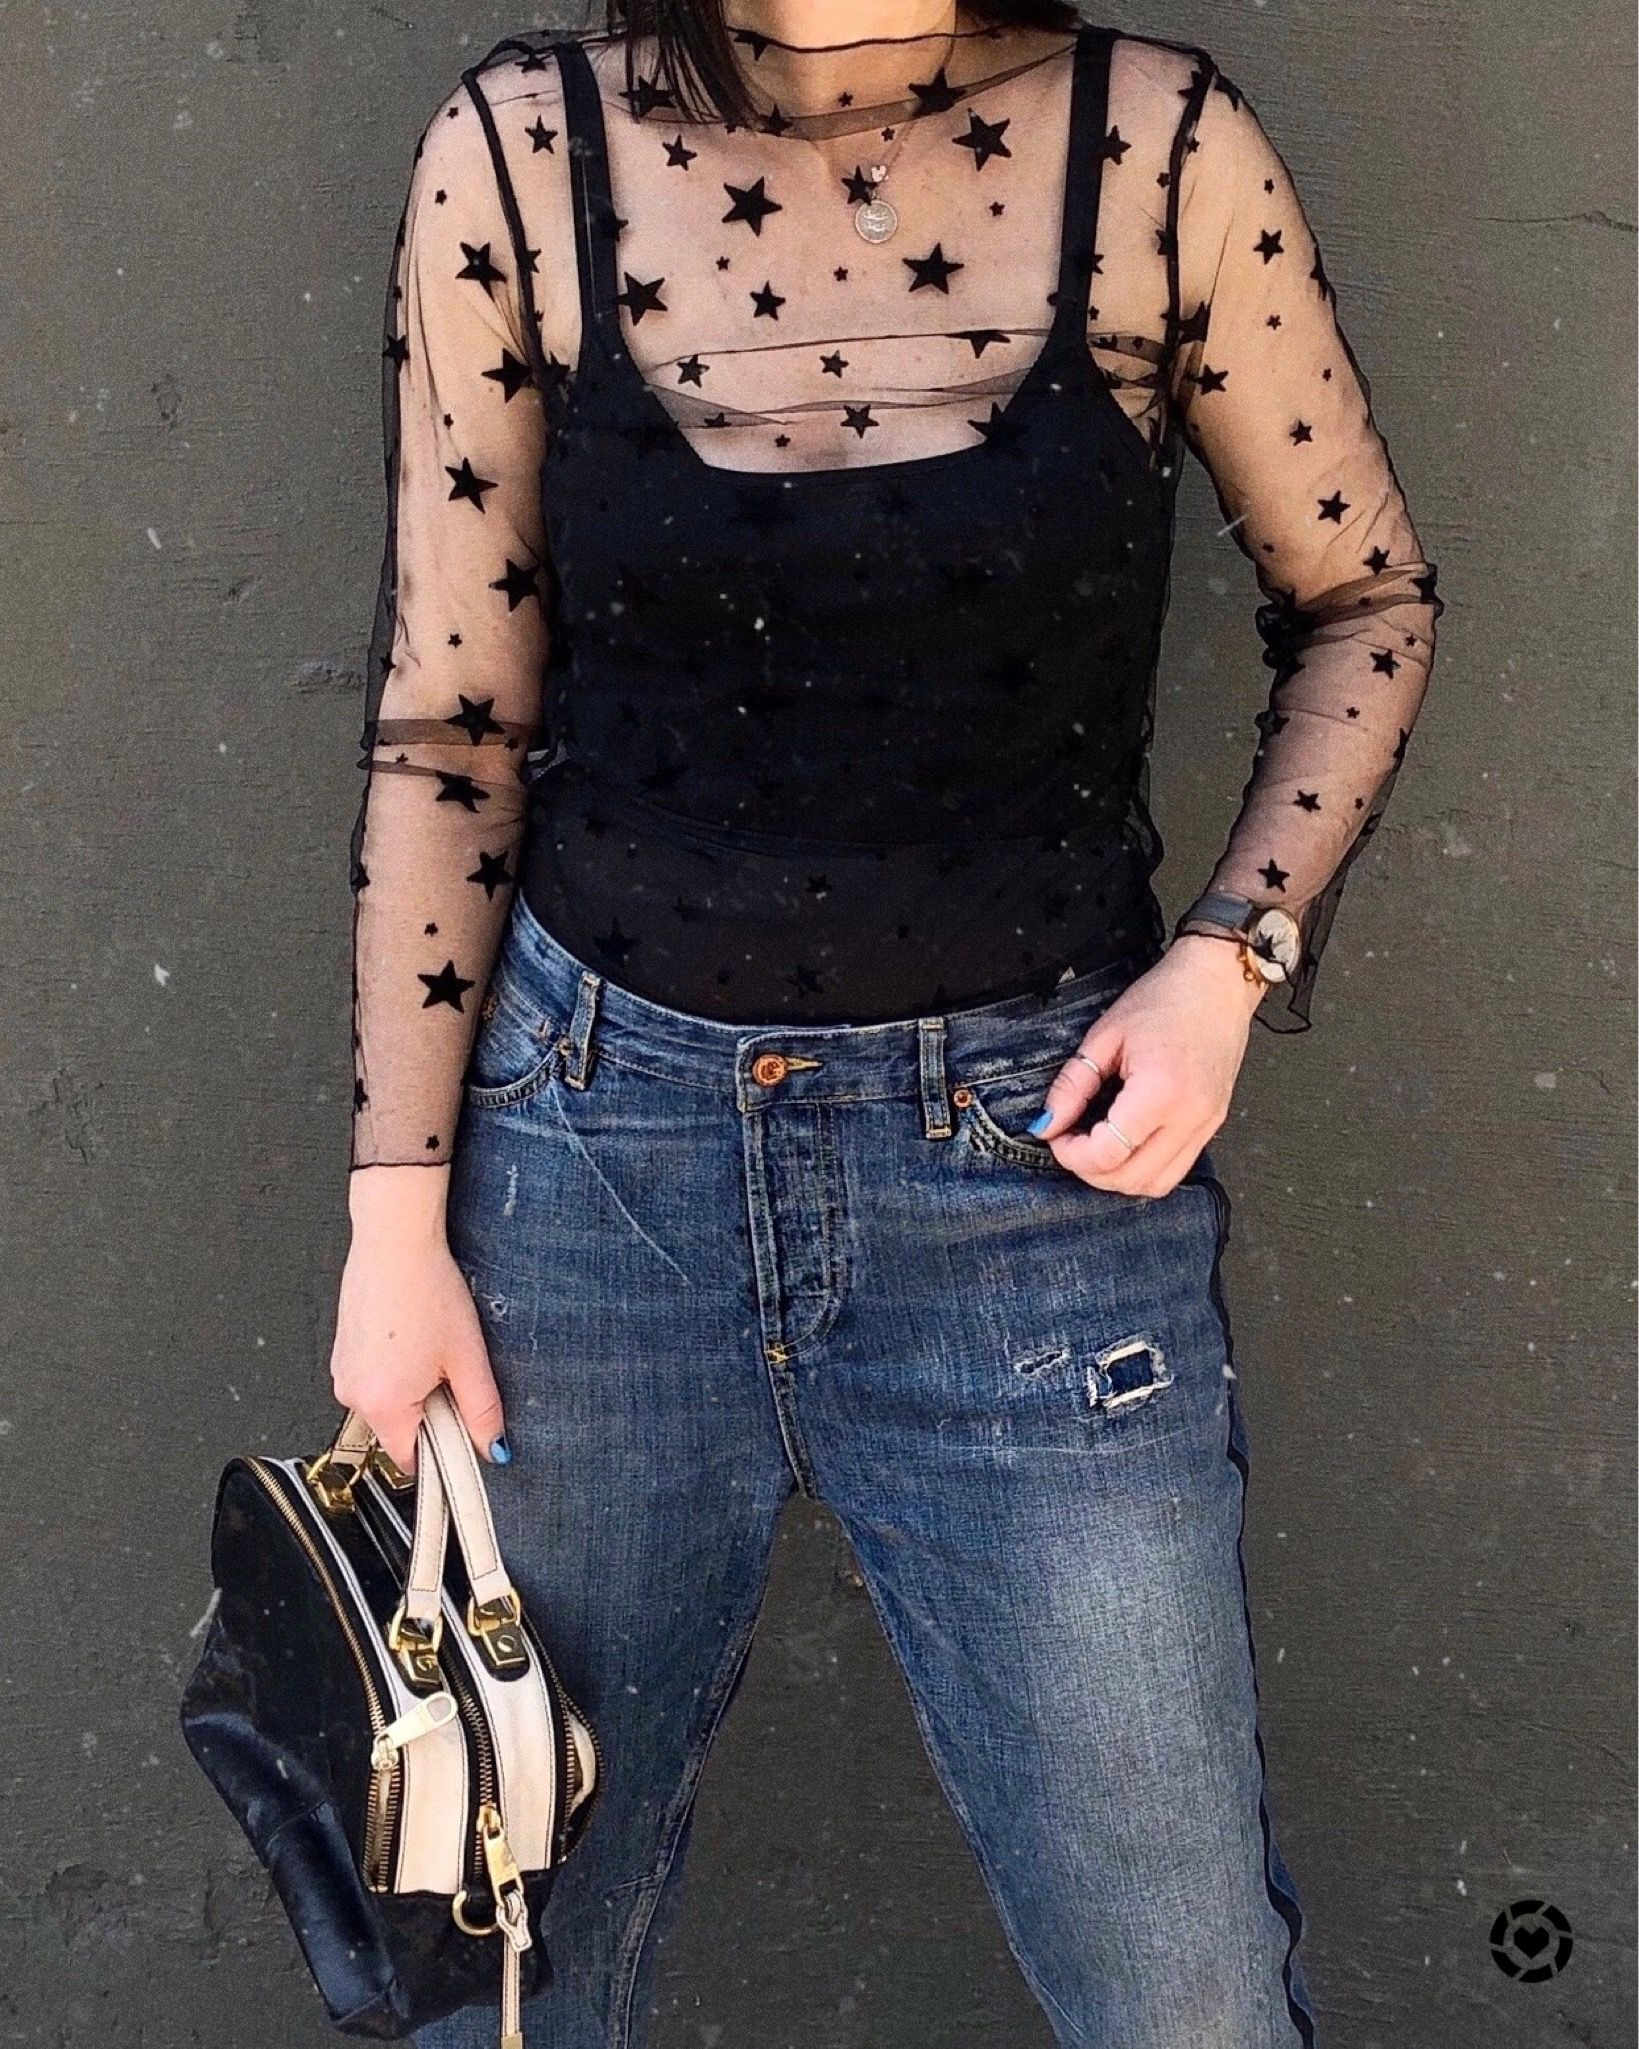 , A sheer top with star pattern for Valentine's Day,#pattern #sheer #valentine, My Pop Star Kda Blog, My Pop Star Kda Blog